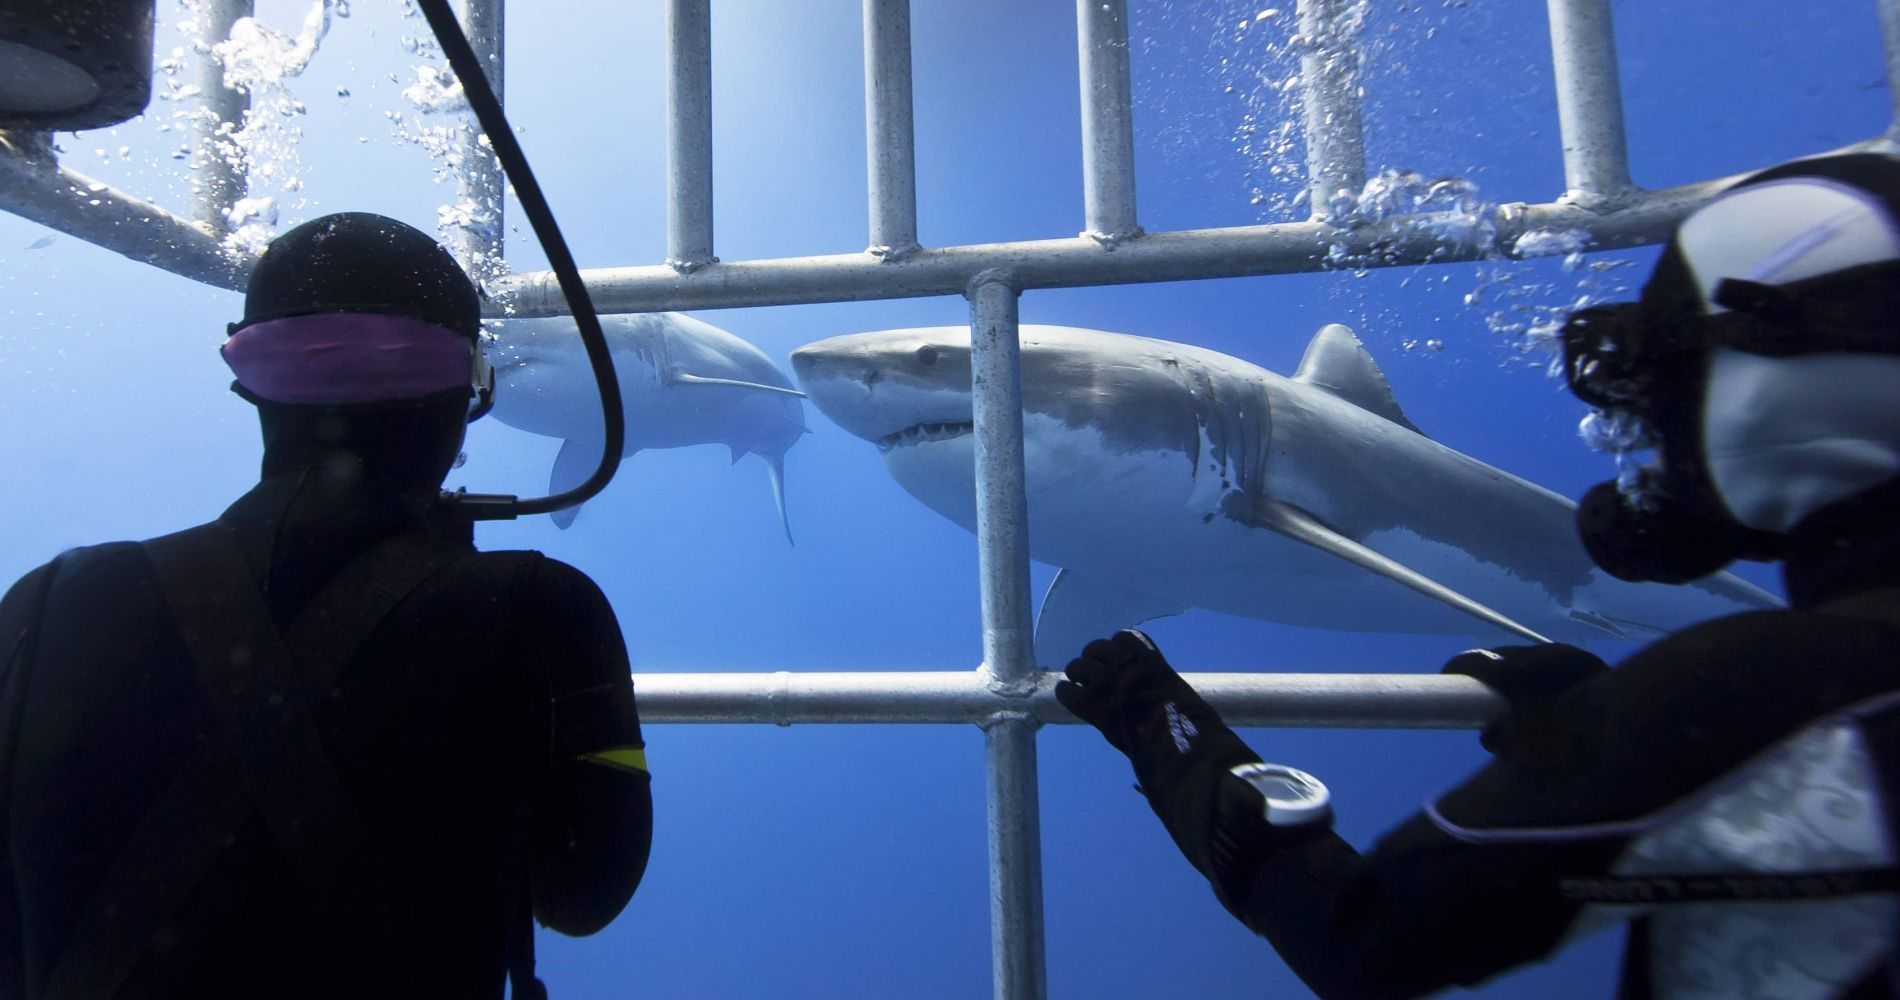 Encounter with Sharks in New Zealand